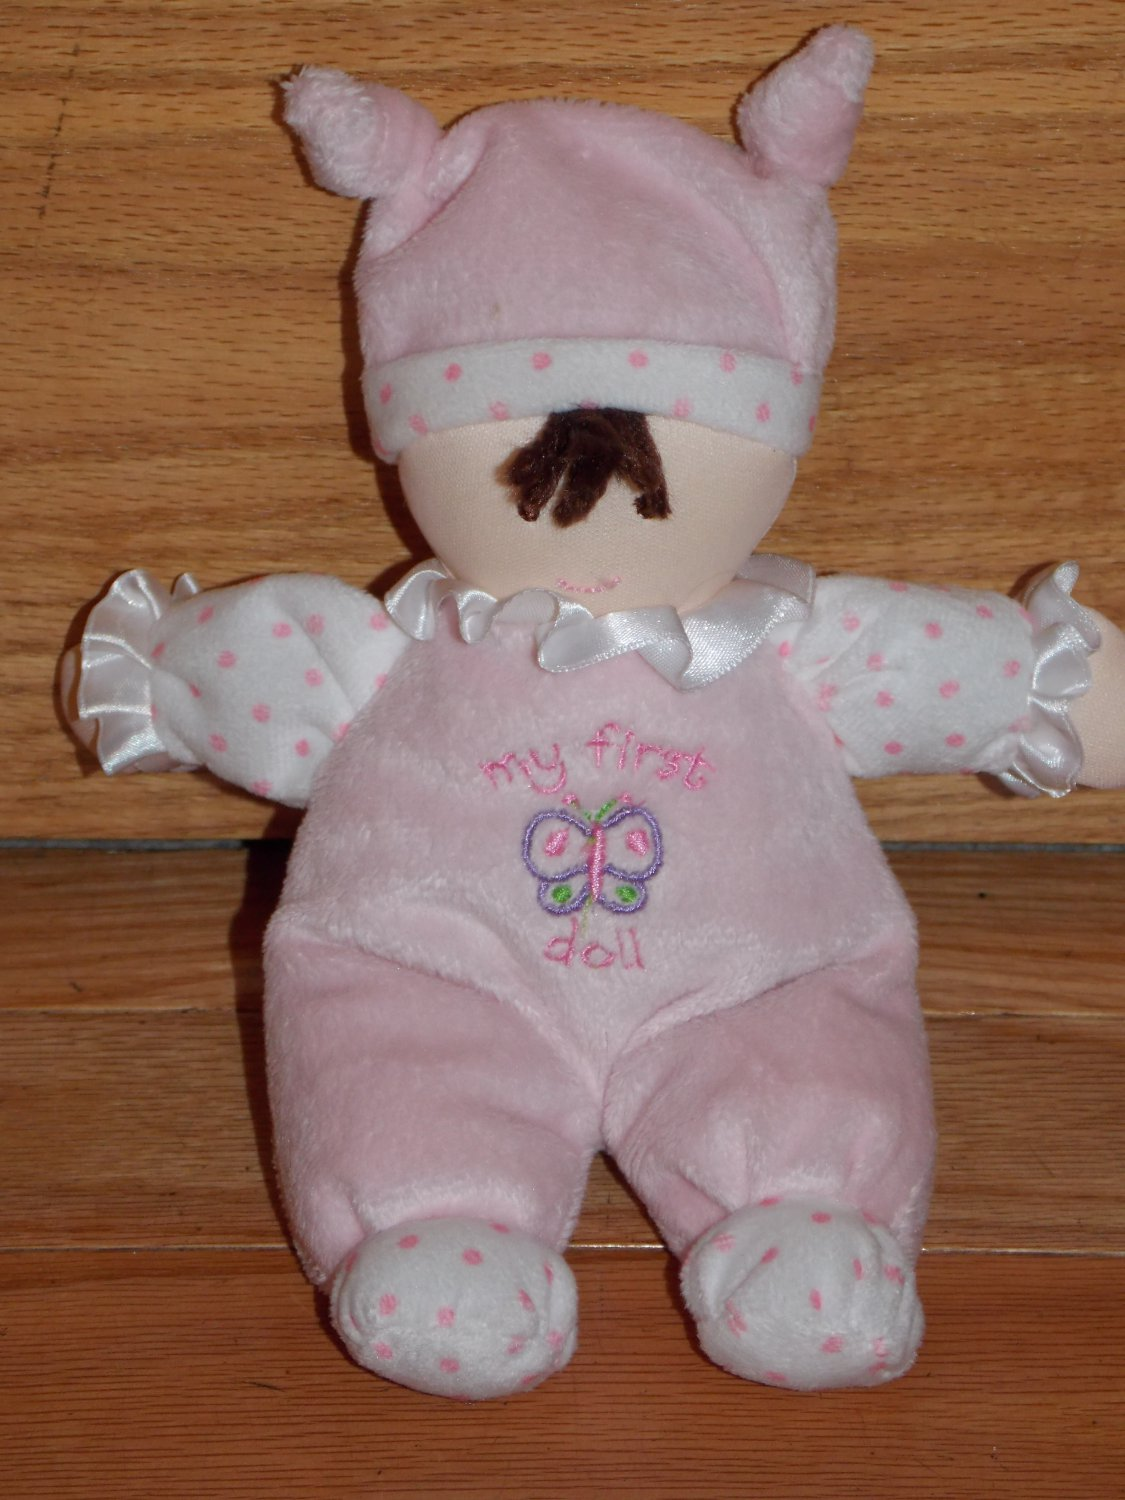 Kids Preferred My First Doll Pink White Velour Dot Butterfly Brown Hair Plush Baby Toy